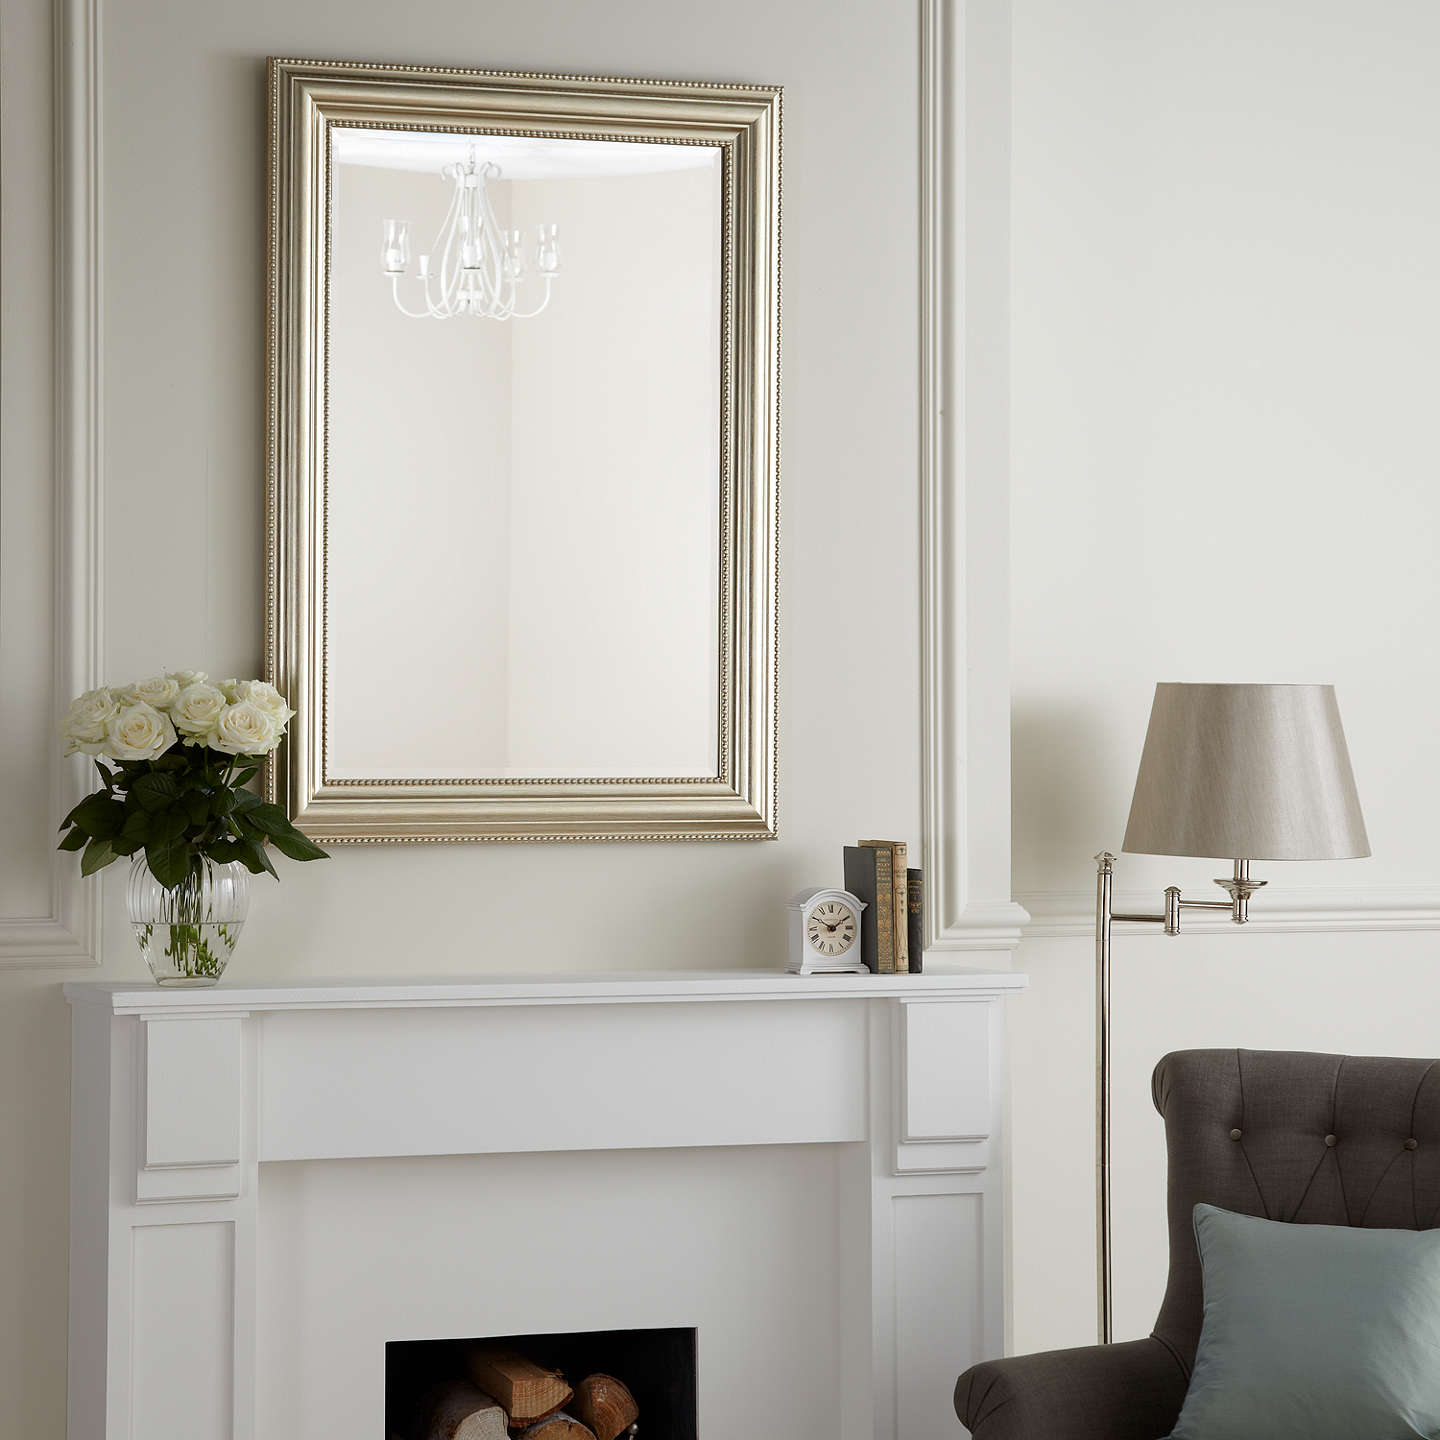 john lewis bead mirror champagne 110 x 79cm at john lewis. Black Bedroom Furniture Sets. Home Design Ideas